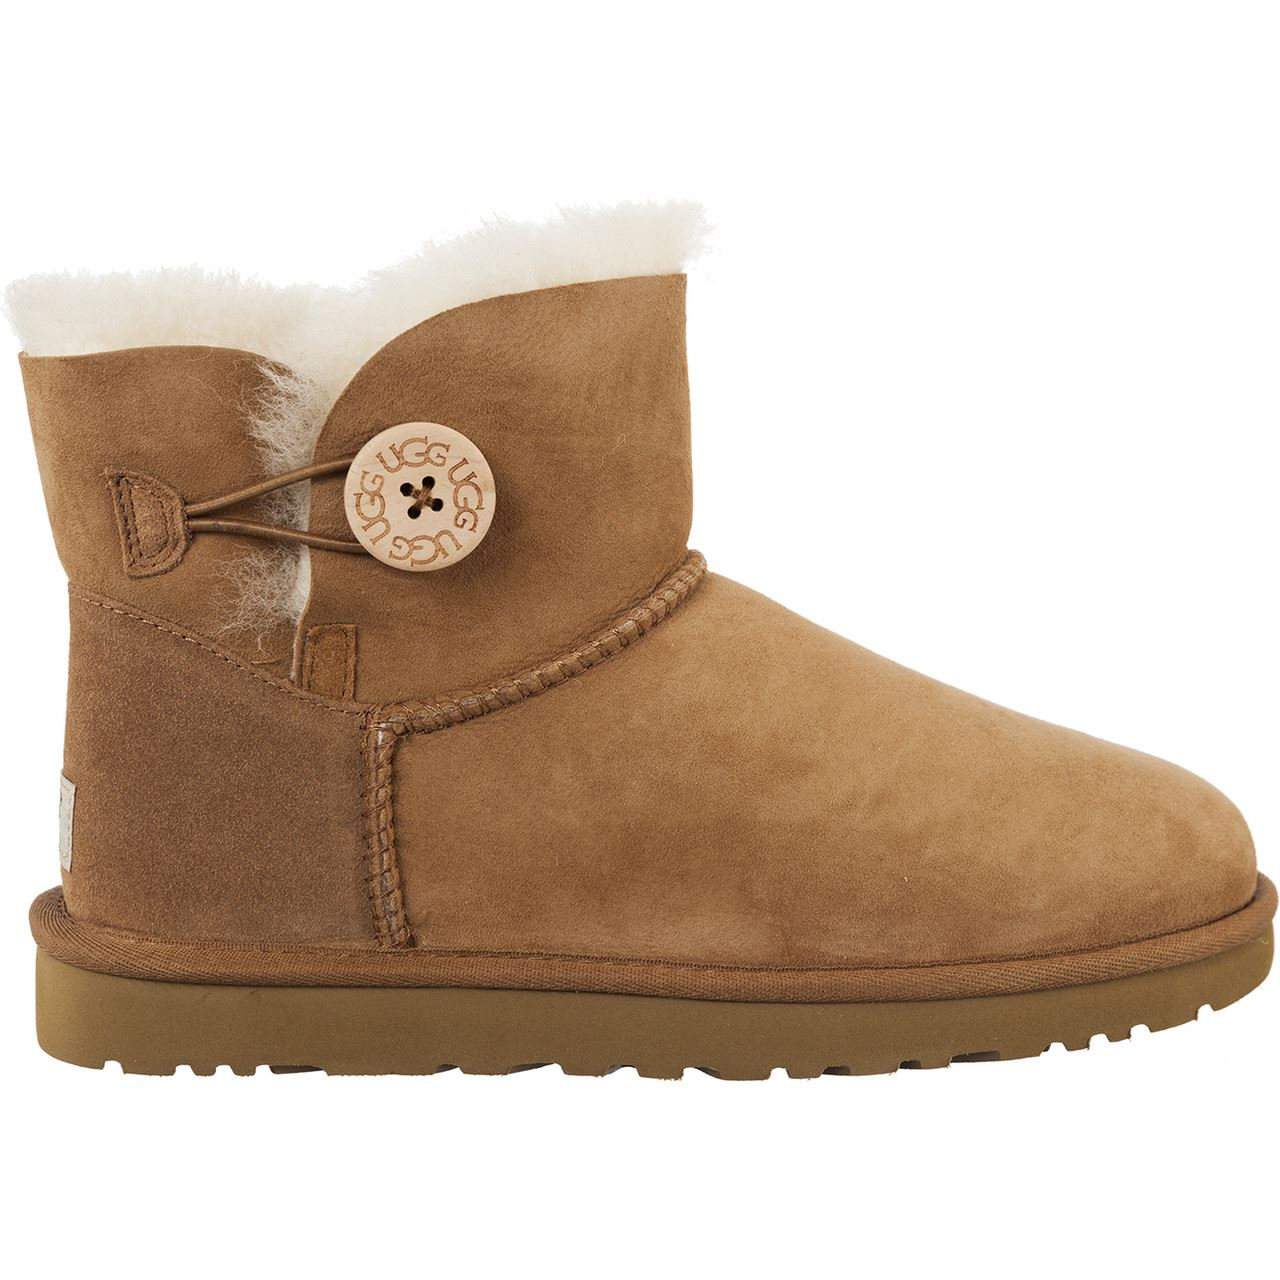 d44759634a1 What Shoe Shops Sell Ugg Boots - cheap watches mgc-gas.com